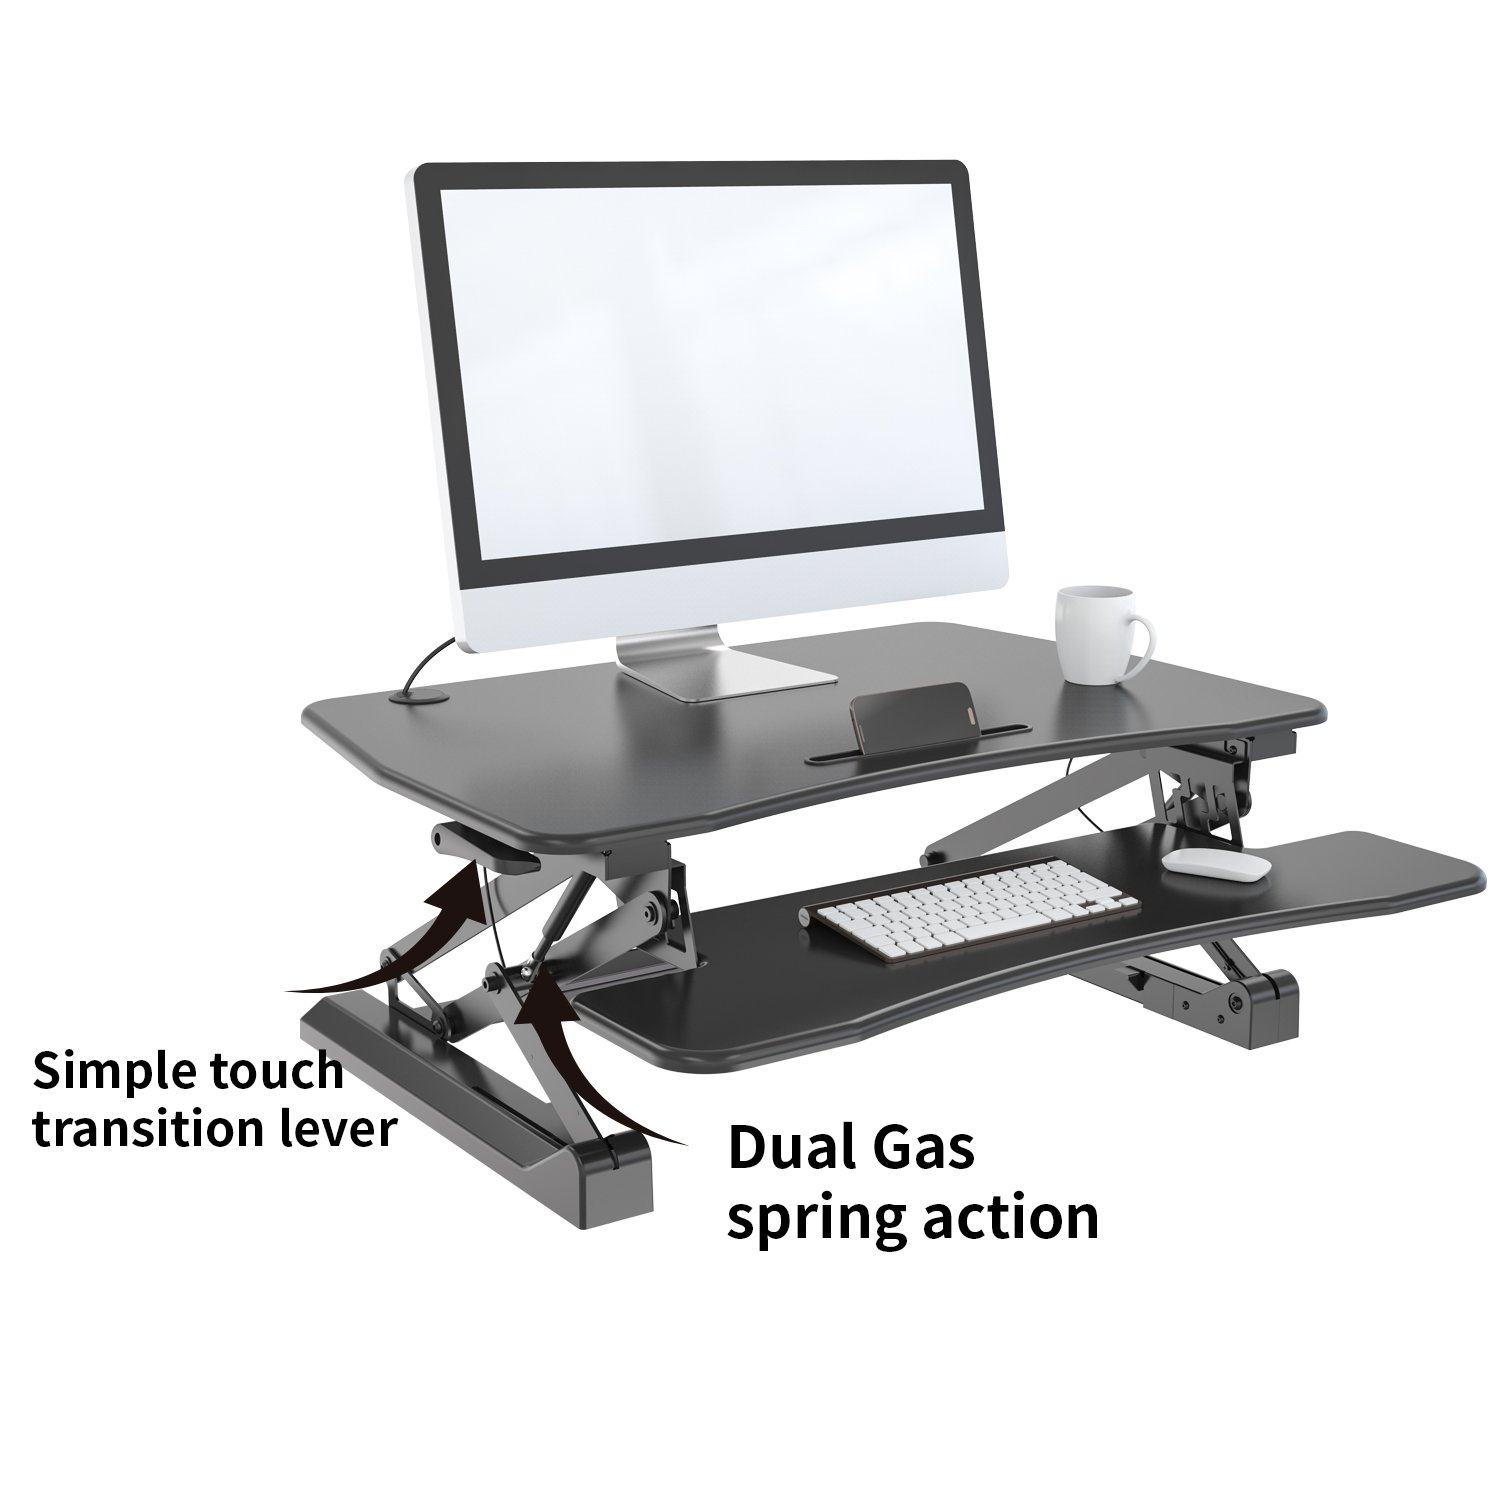 Zeal Height Adjustable Standing Desk Ergonomic Laptop Monitor Standing Dual Riser Sit to Stand Table Computer Workstation Desk (Black) by Zealdesk (Image #2)